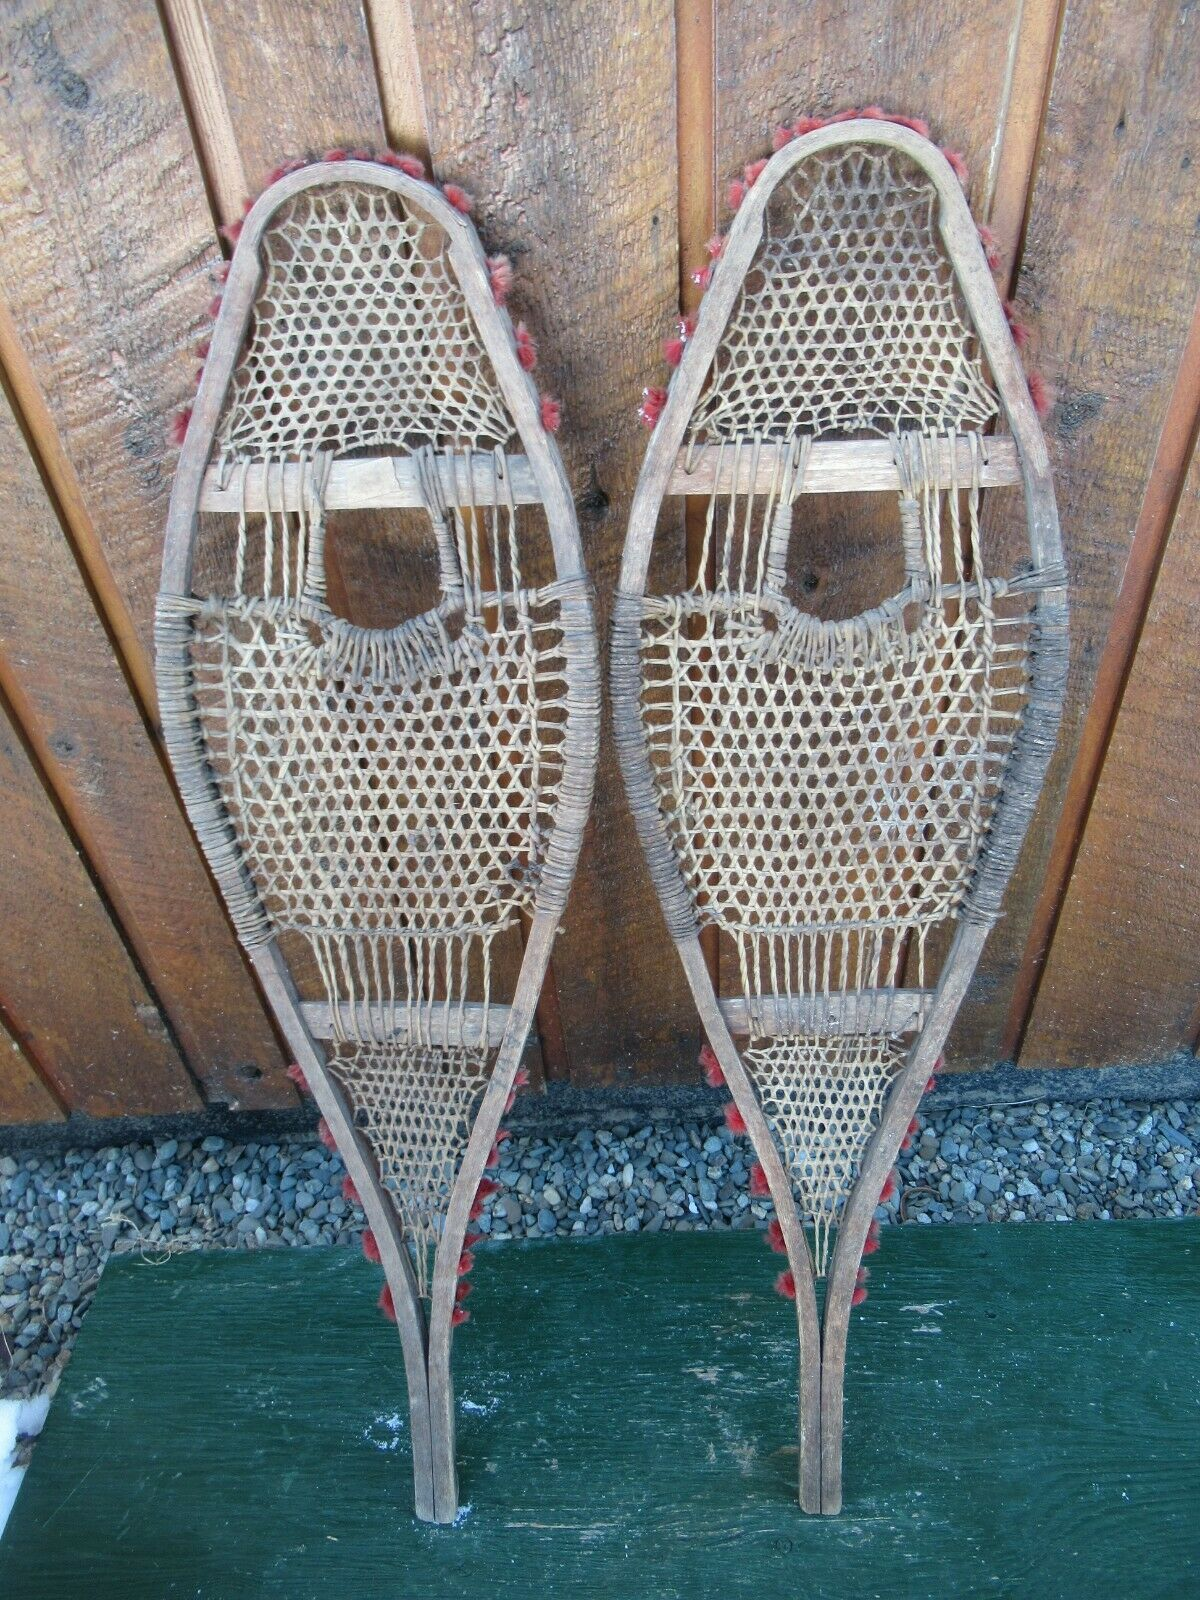 GREAT Snowshoes  34  Long 10  wide BEAUTIFUL VERY OLD HAND MADE  with 60% off discount